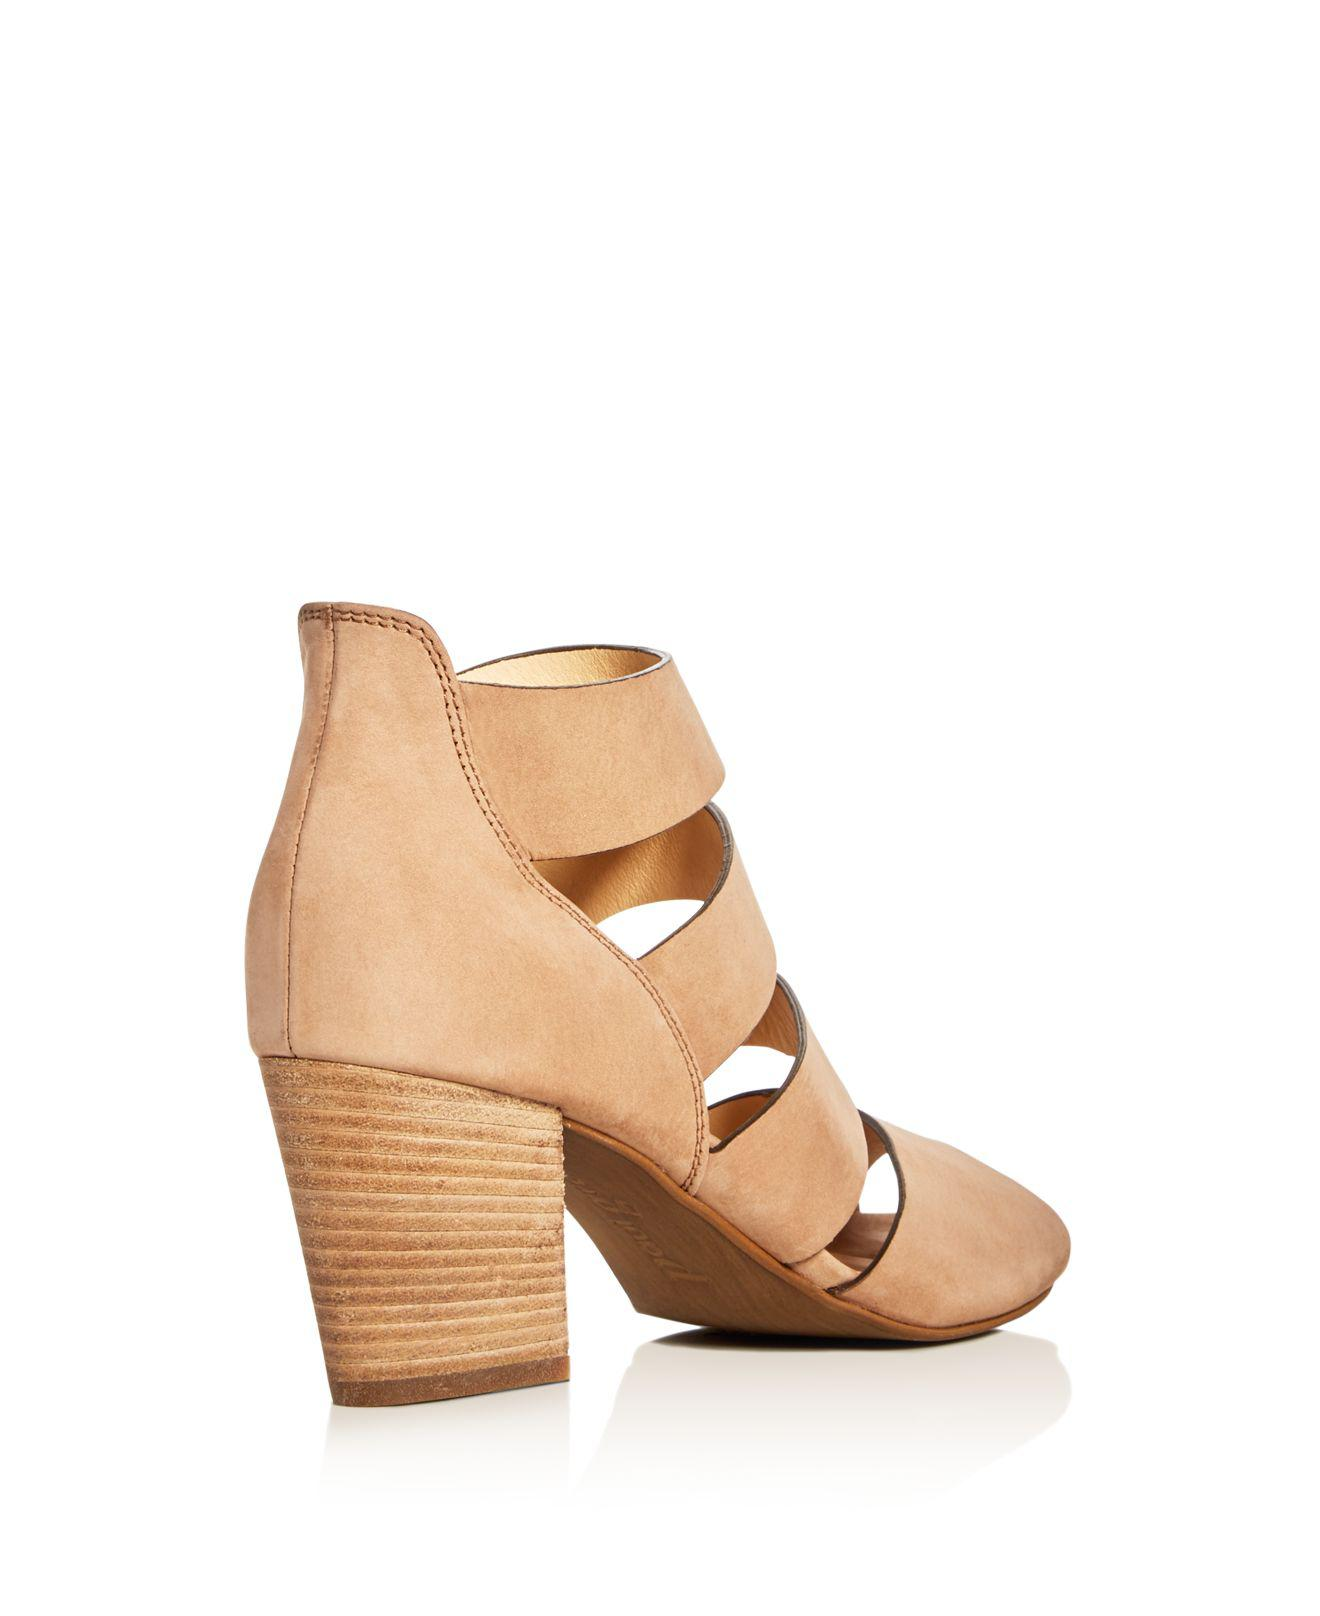 e9708f7822434 Paul Green Michele Caged Sandals in Brown - Lyst